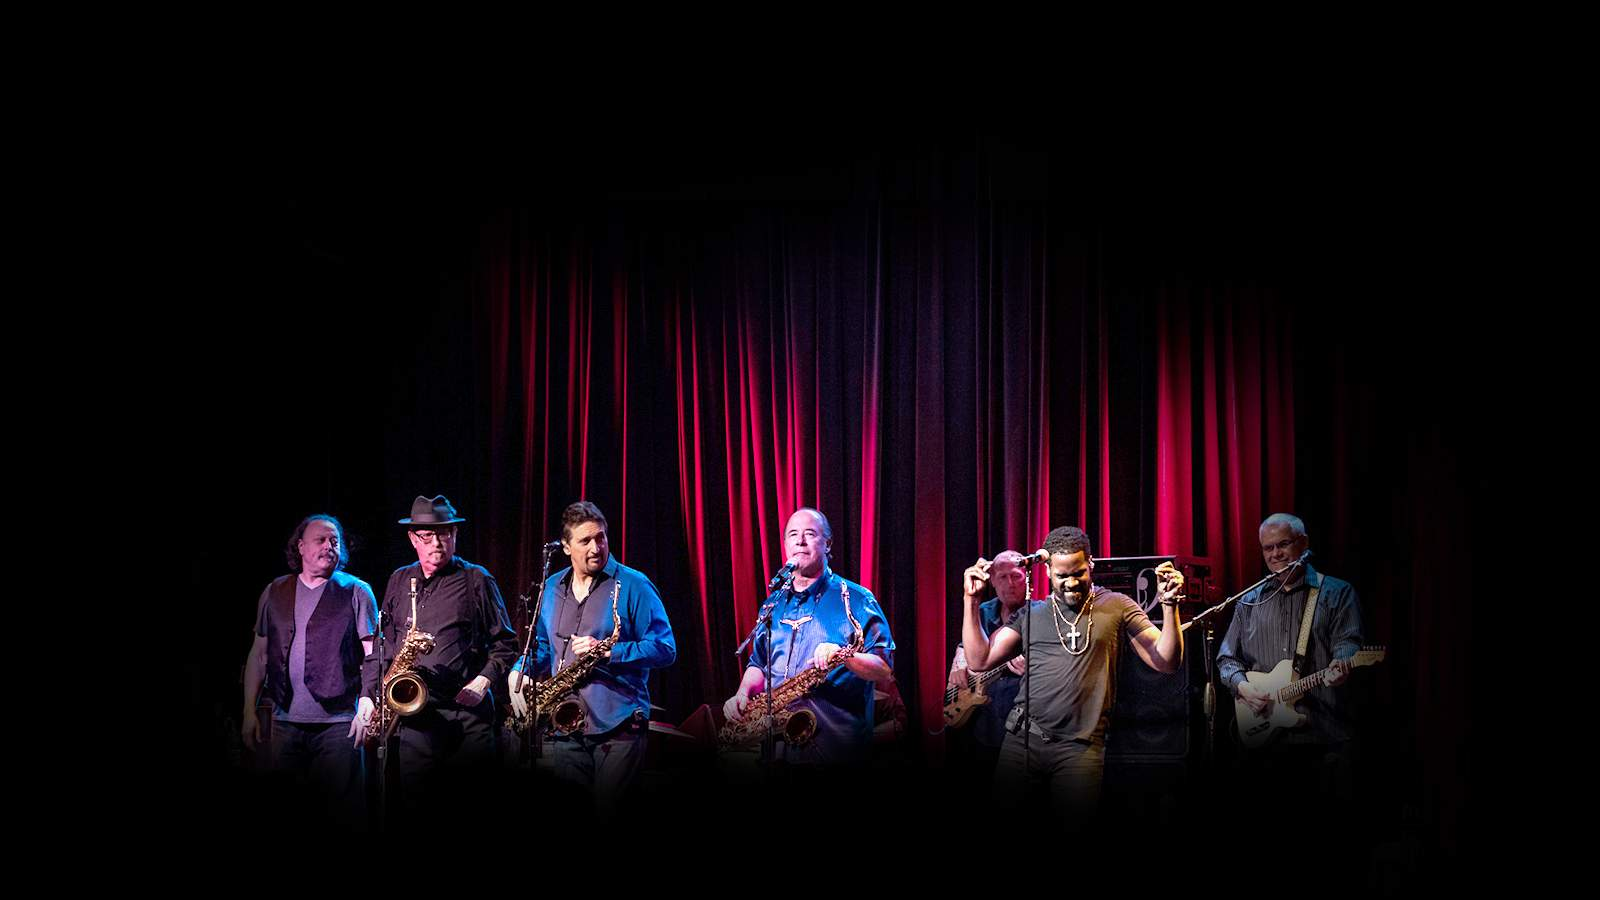 Tower of Power (Rescheduled from 6/10/2020)